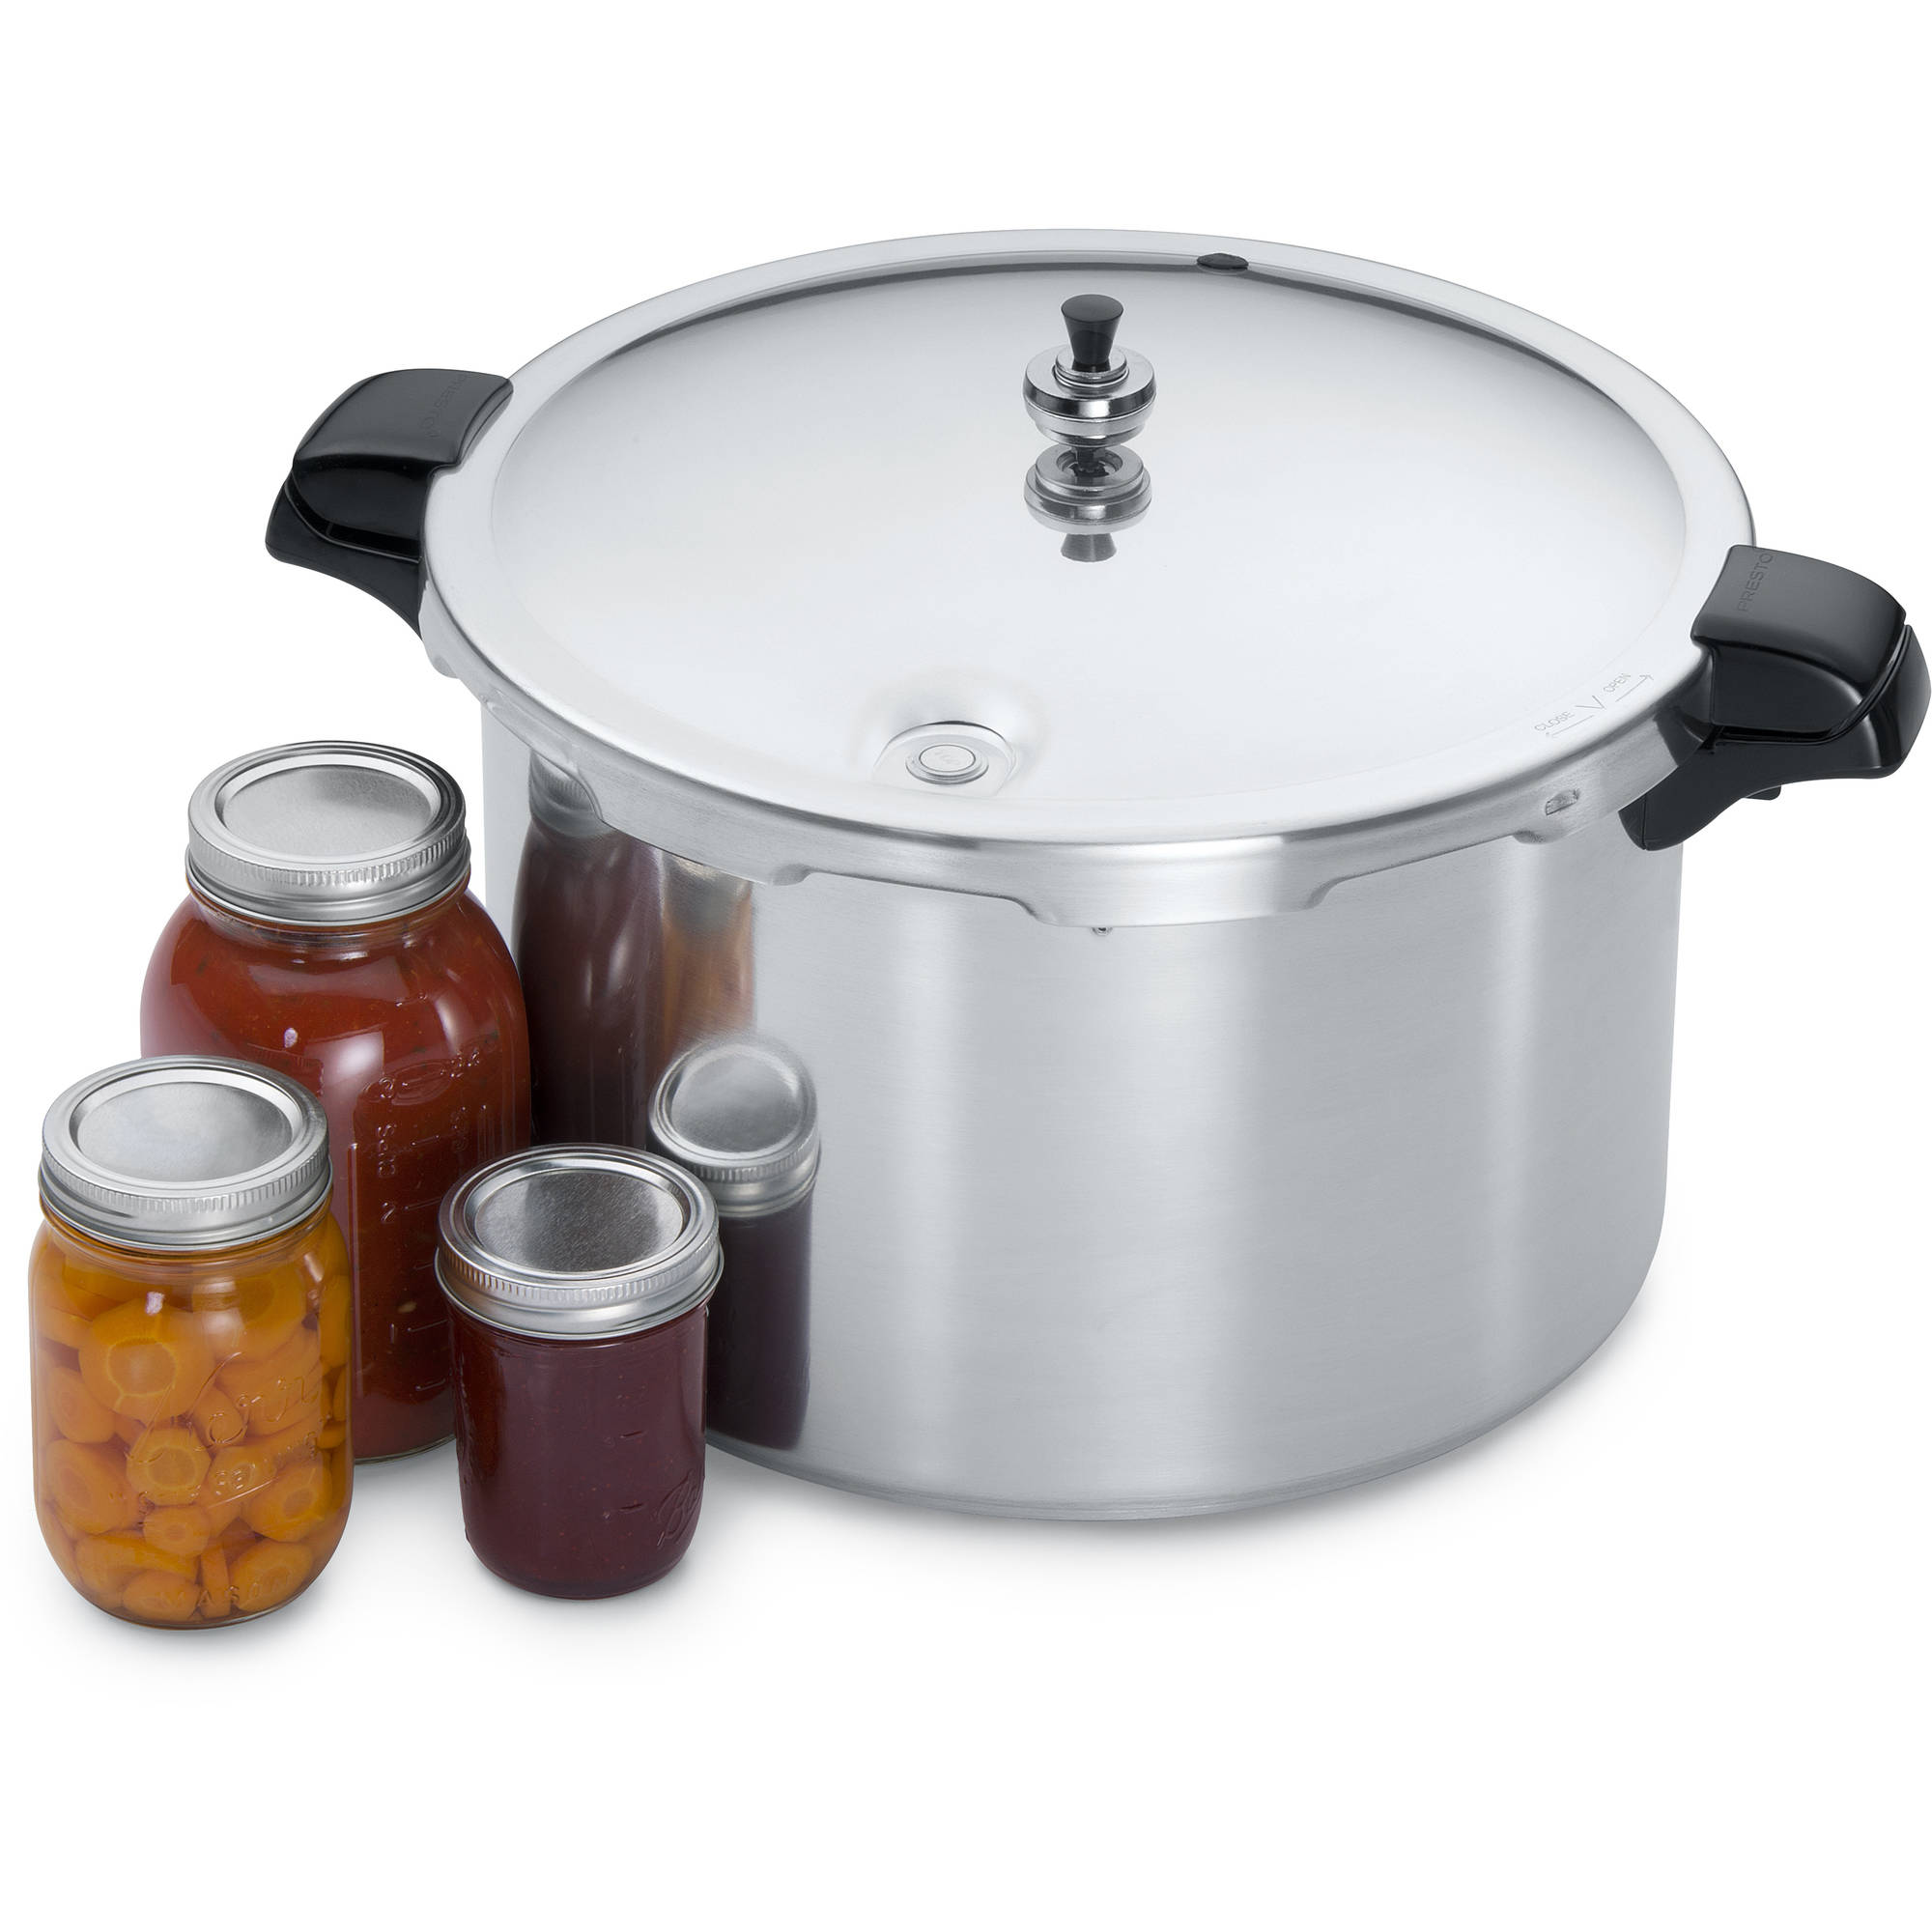 Image result for pressure cooker for canning